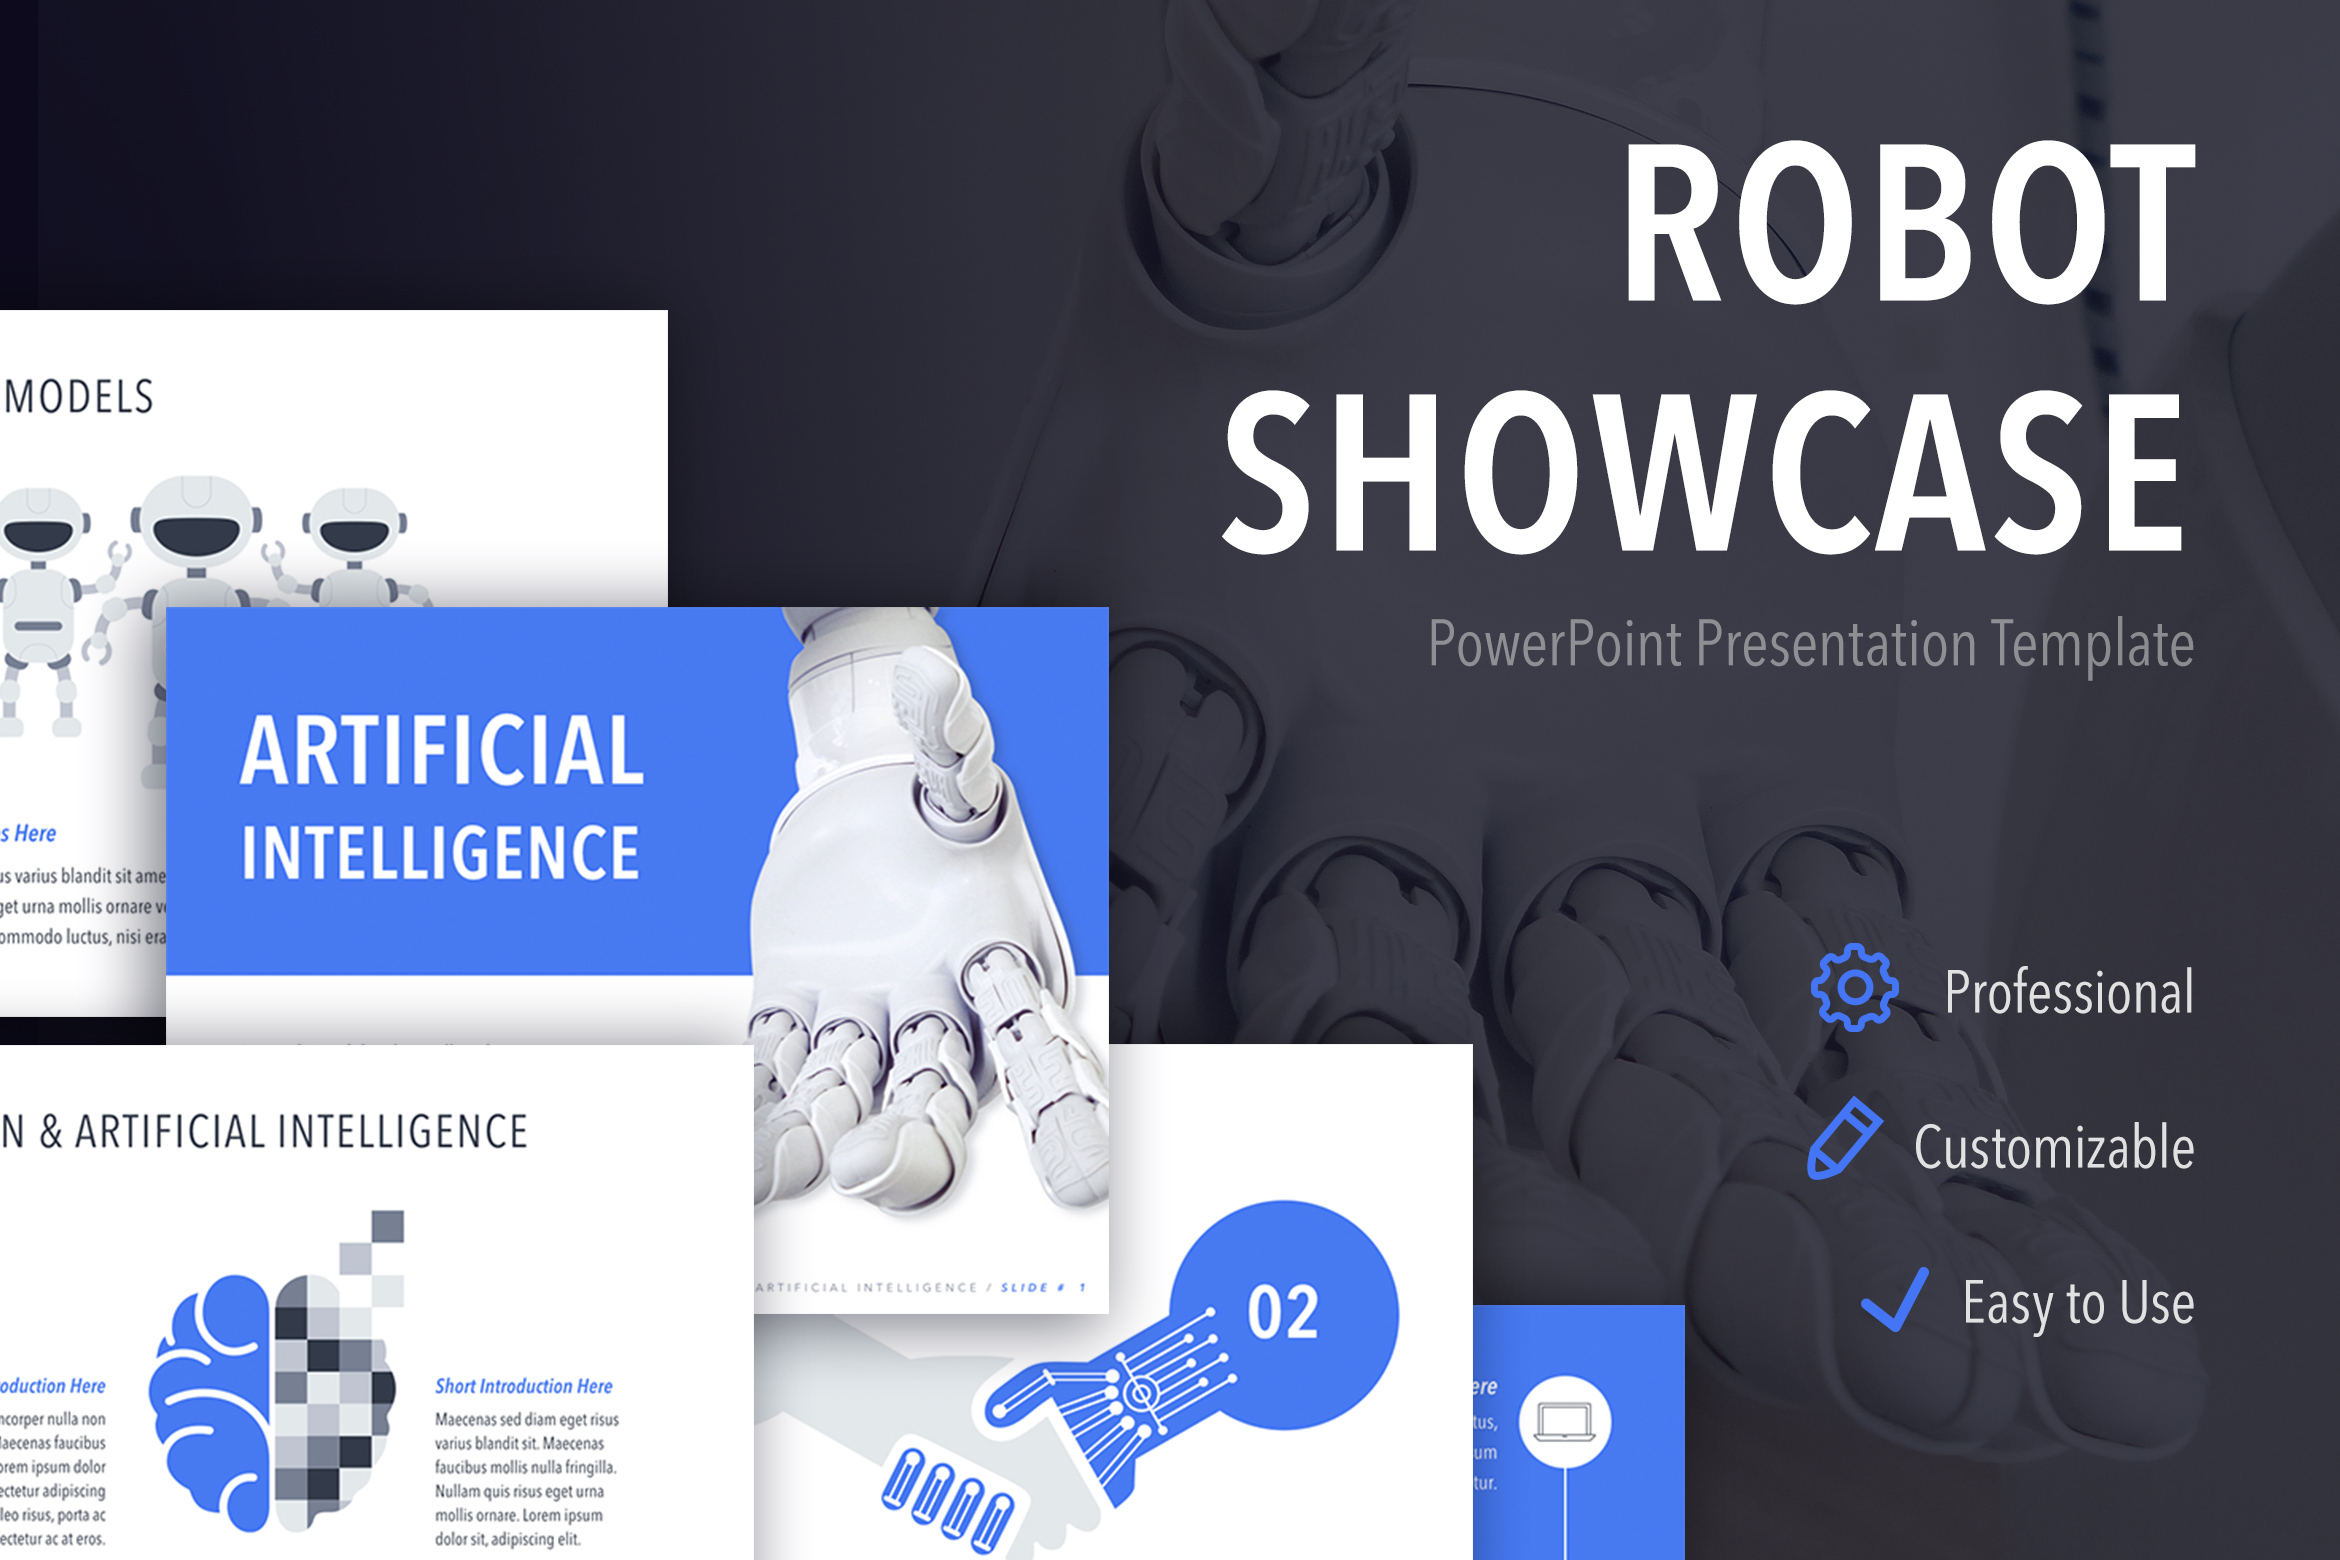 Robot Showcase PowerPoint Template example image 1